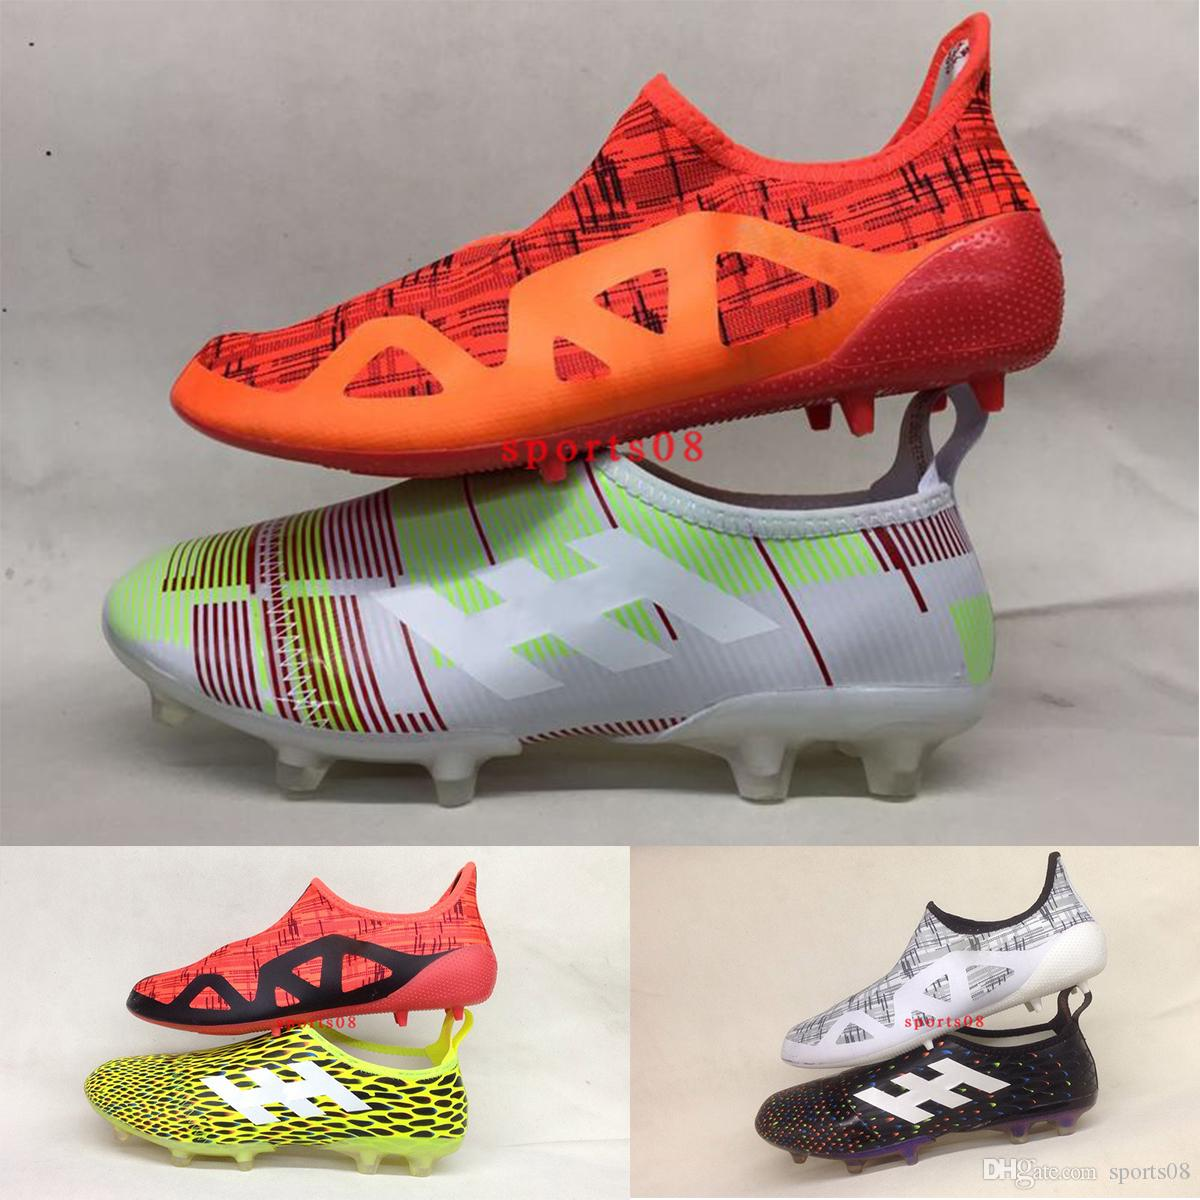 de2a817dfb15 2019 2017 New Arrival Original Soccer Cleats Glitch17 FG Football Boots  Mens Glitch Skin Top Quality Soccer Shoes Copa White Orange Green 39 45  From ...